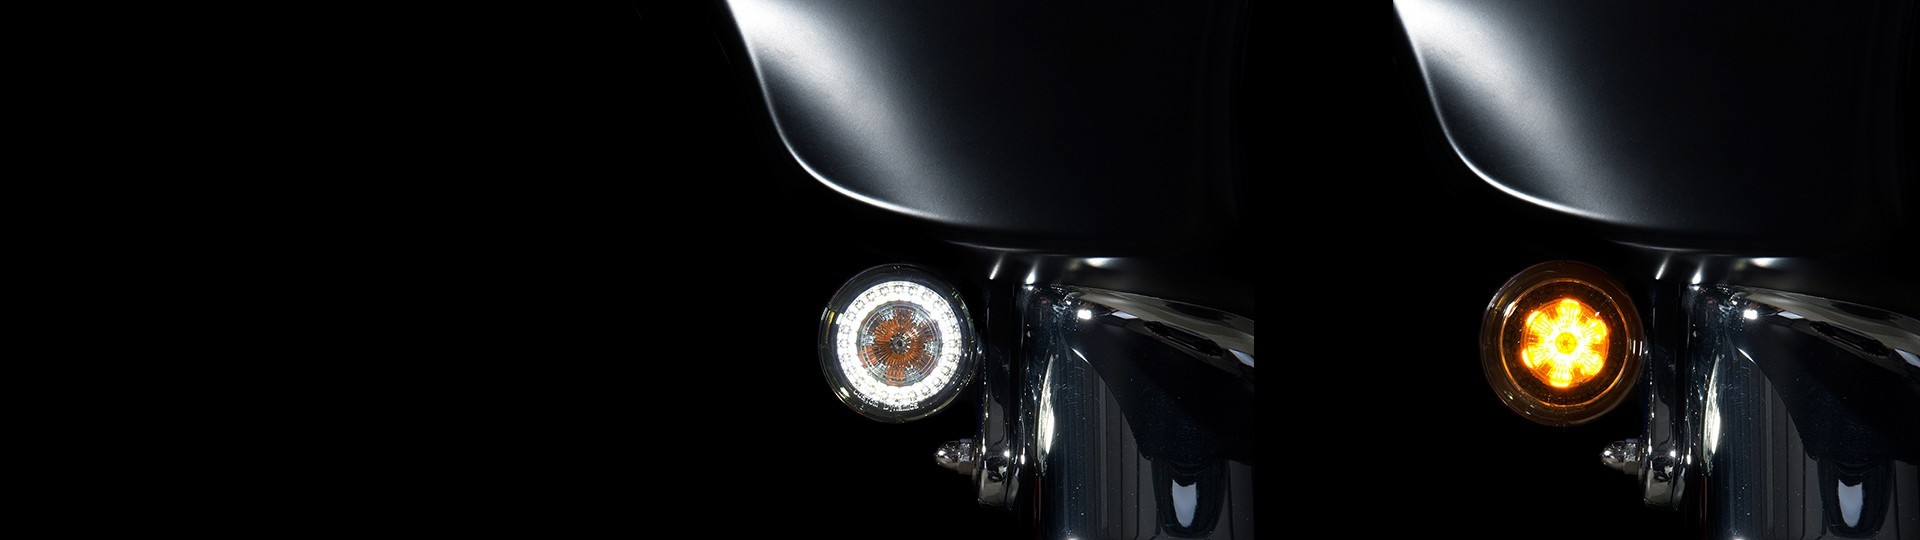 Motorcycle Led Lights By Custom Dynamics Shop Categories Store Home Electrical Turn Signals Tail Probeam Taillights